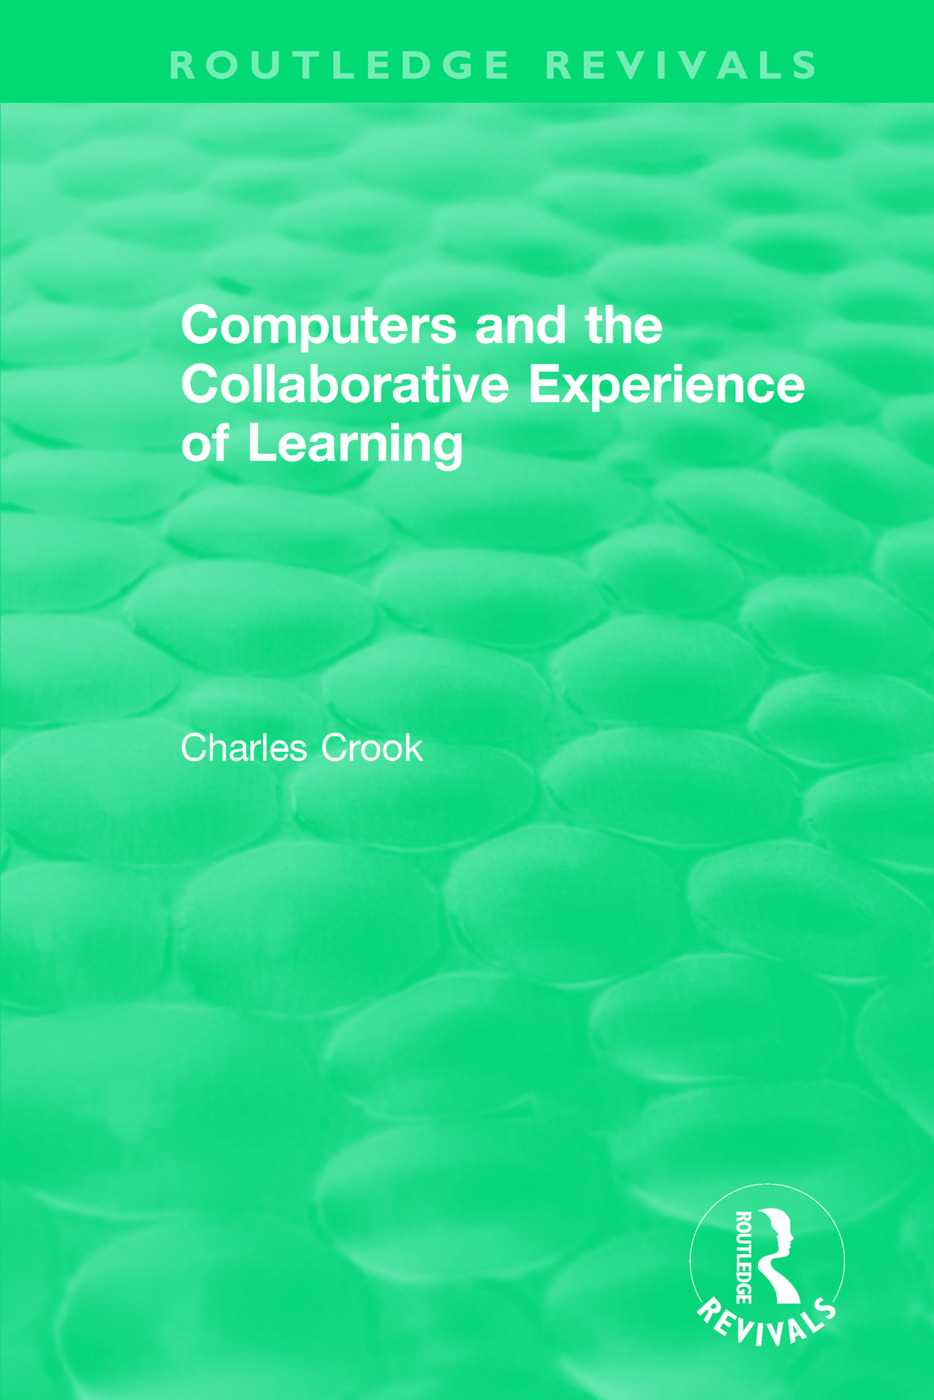 Computers and the Collaborative Experience of Learning (1994) book cover